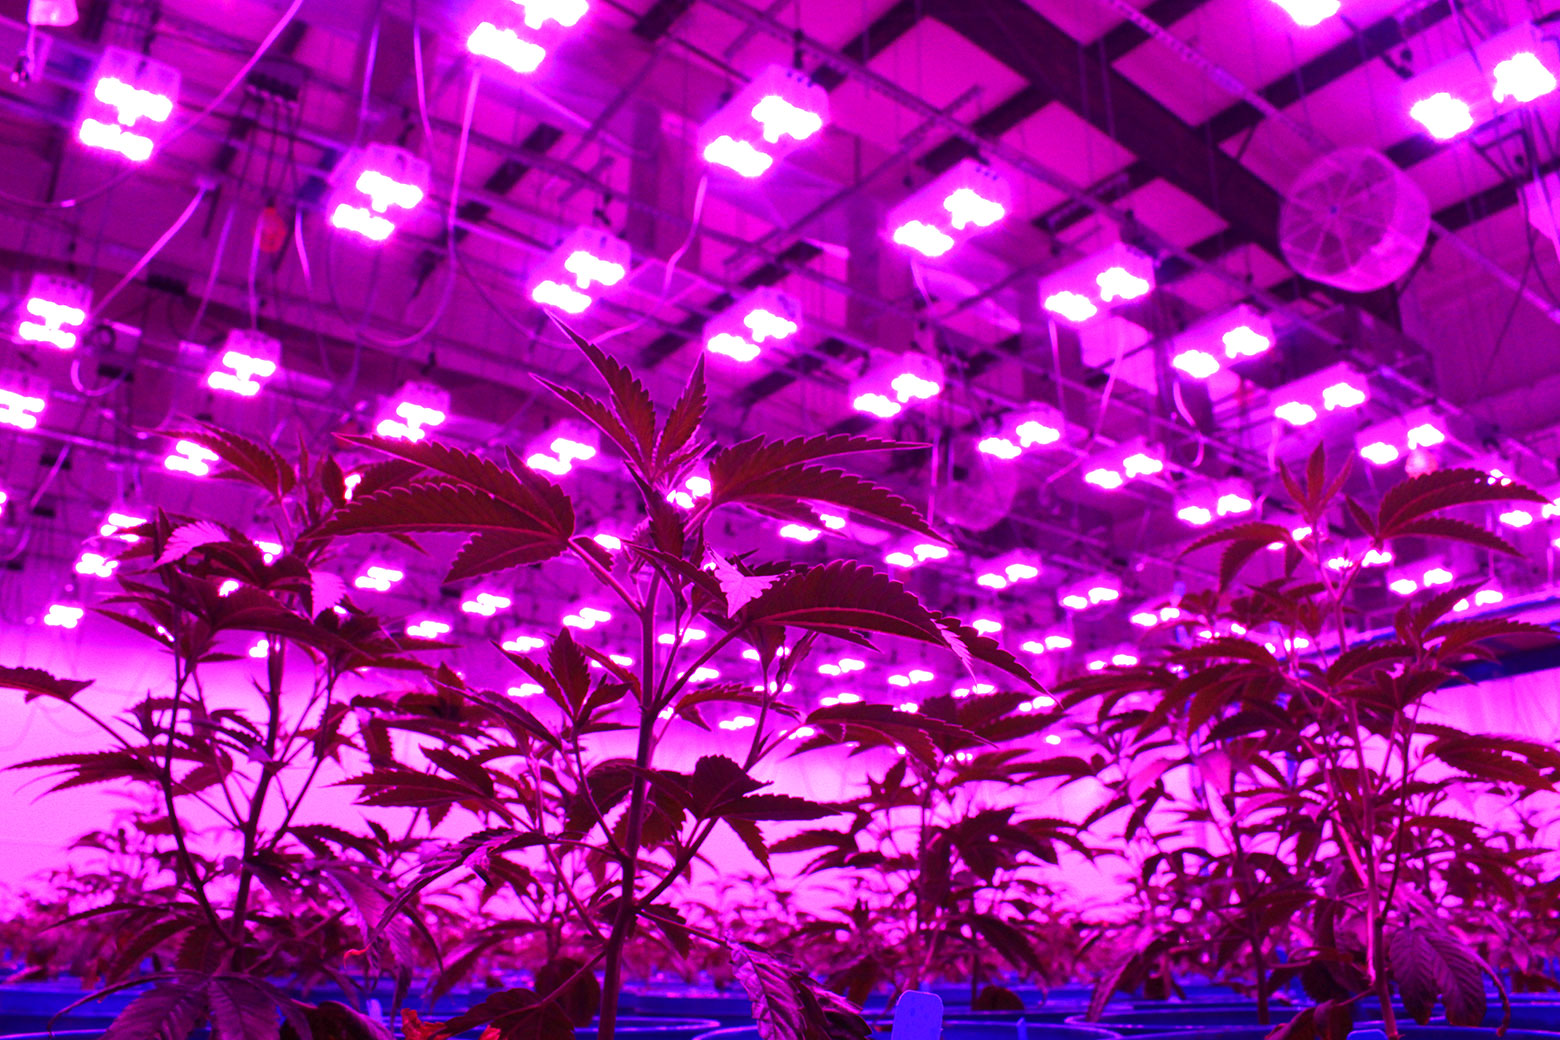 led-grow-lights-hang-over-plant